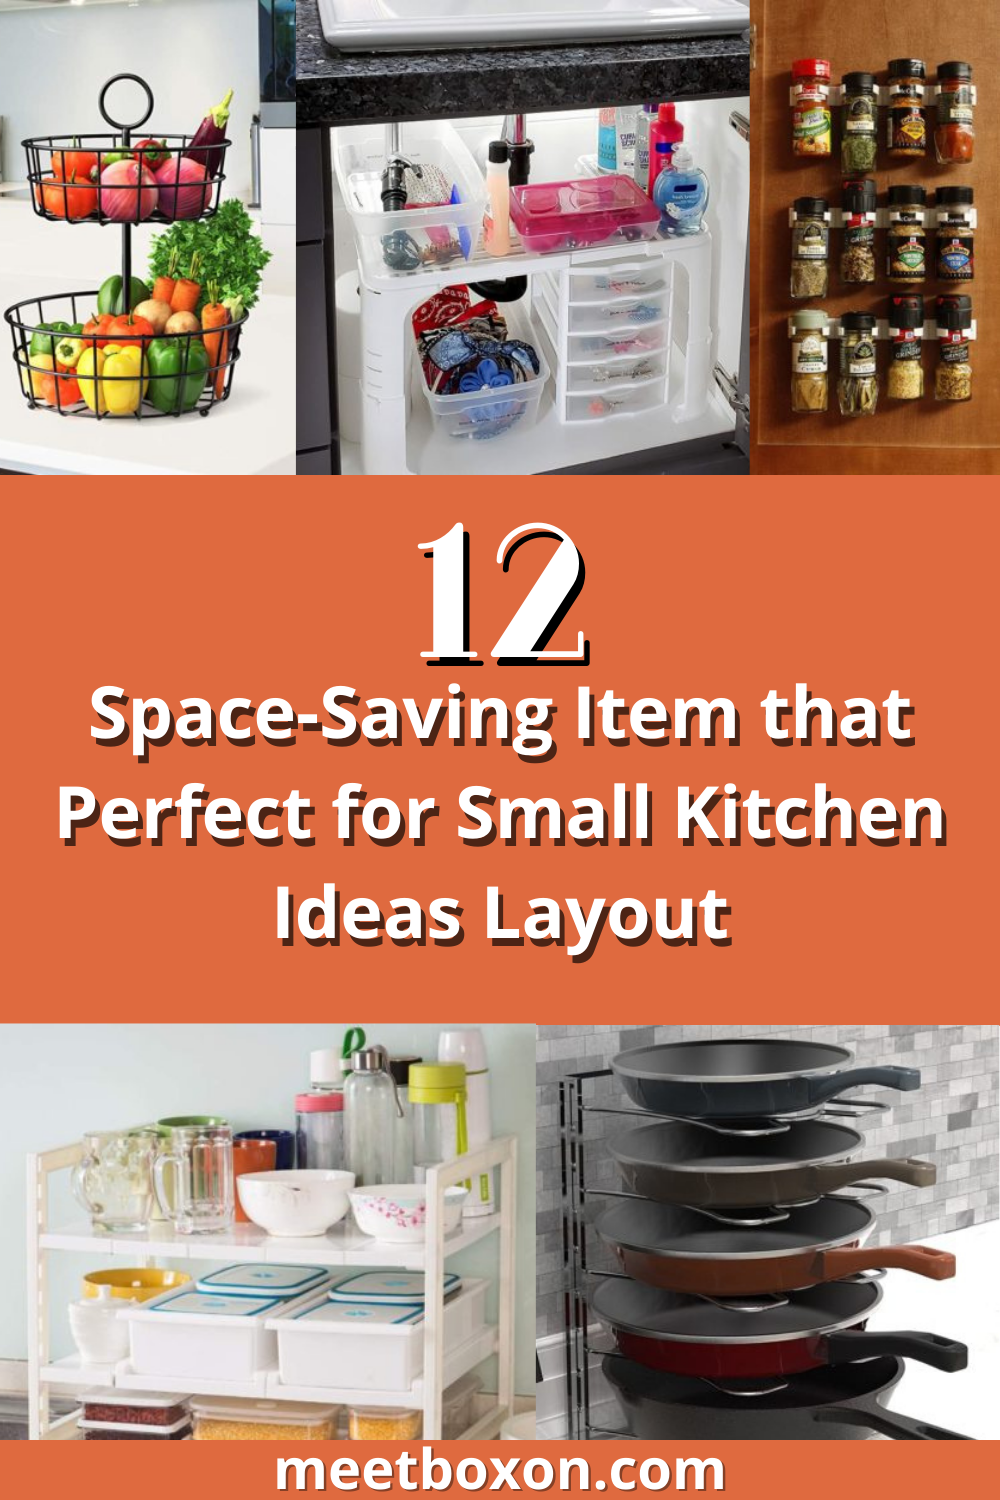 12 Space-Saving Item that Perfect for Small Kitchen Ideas Layout